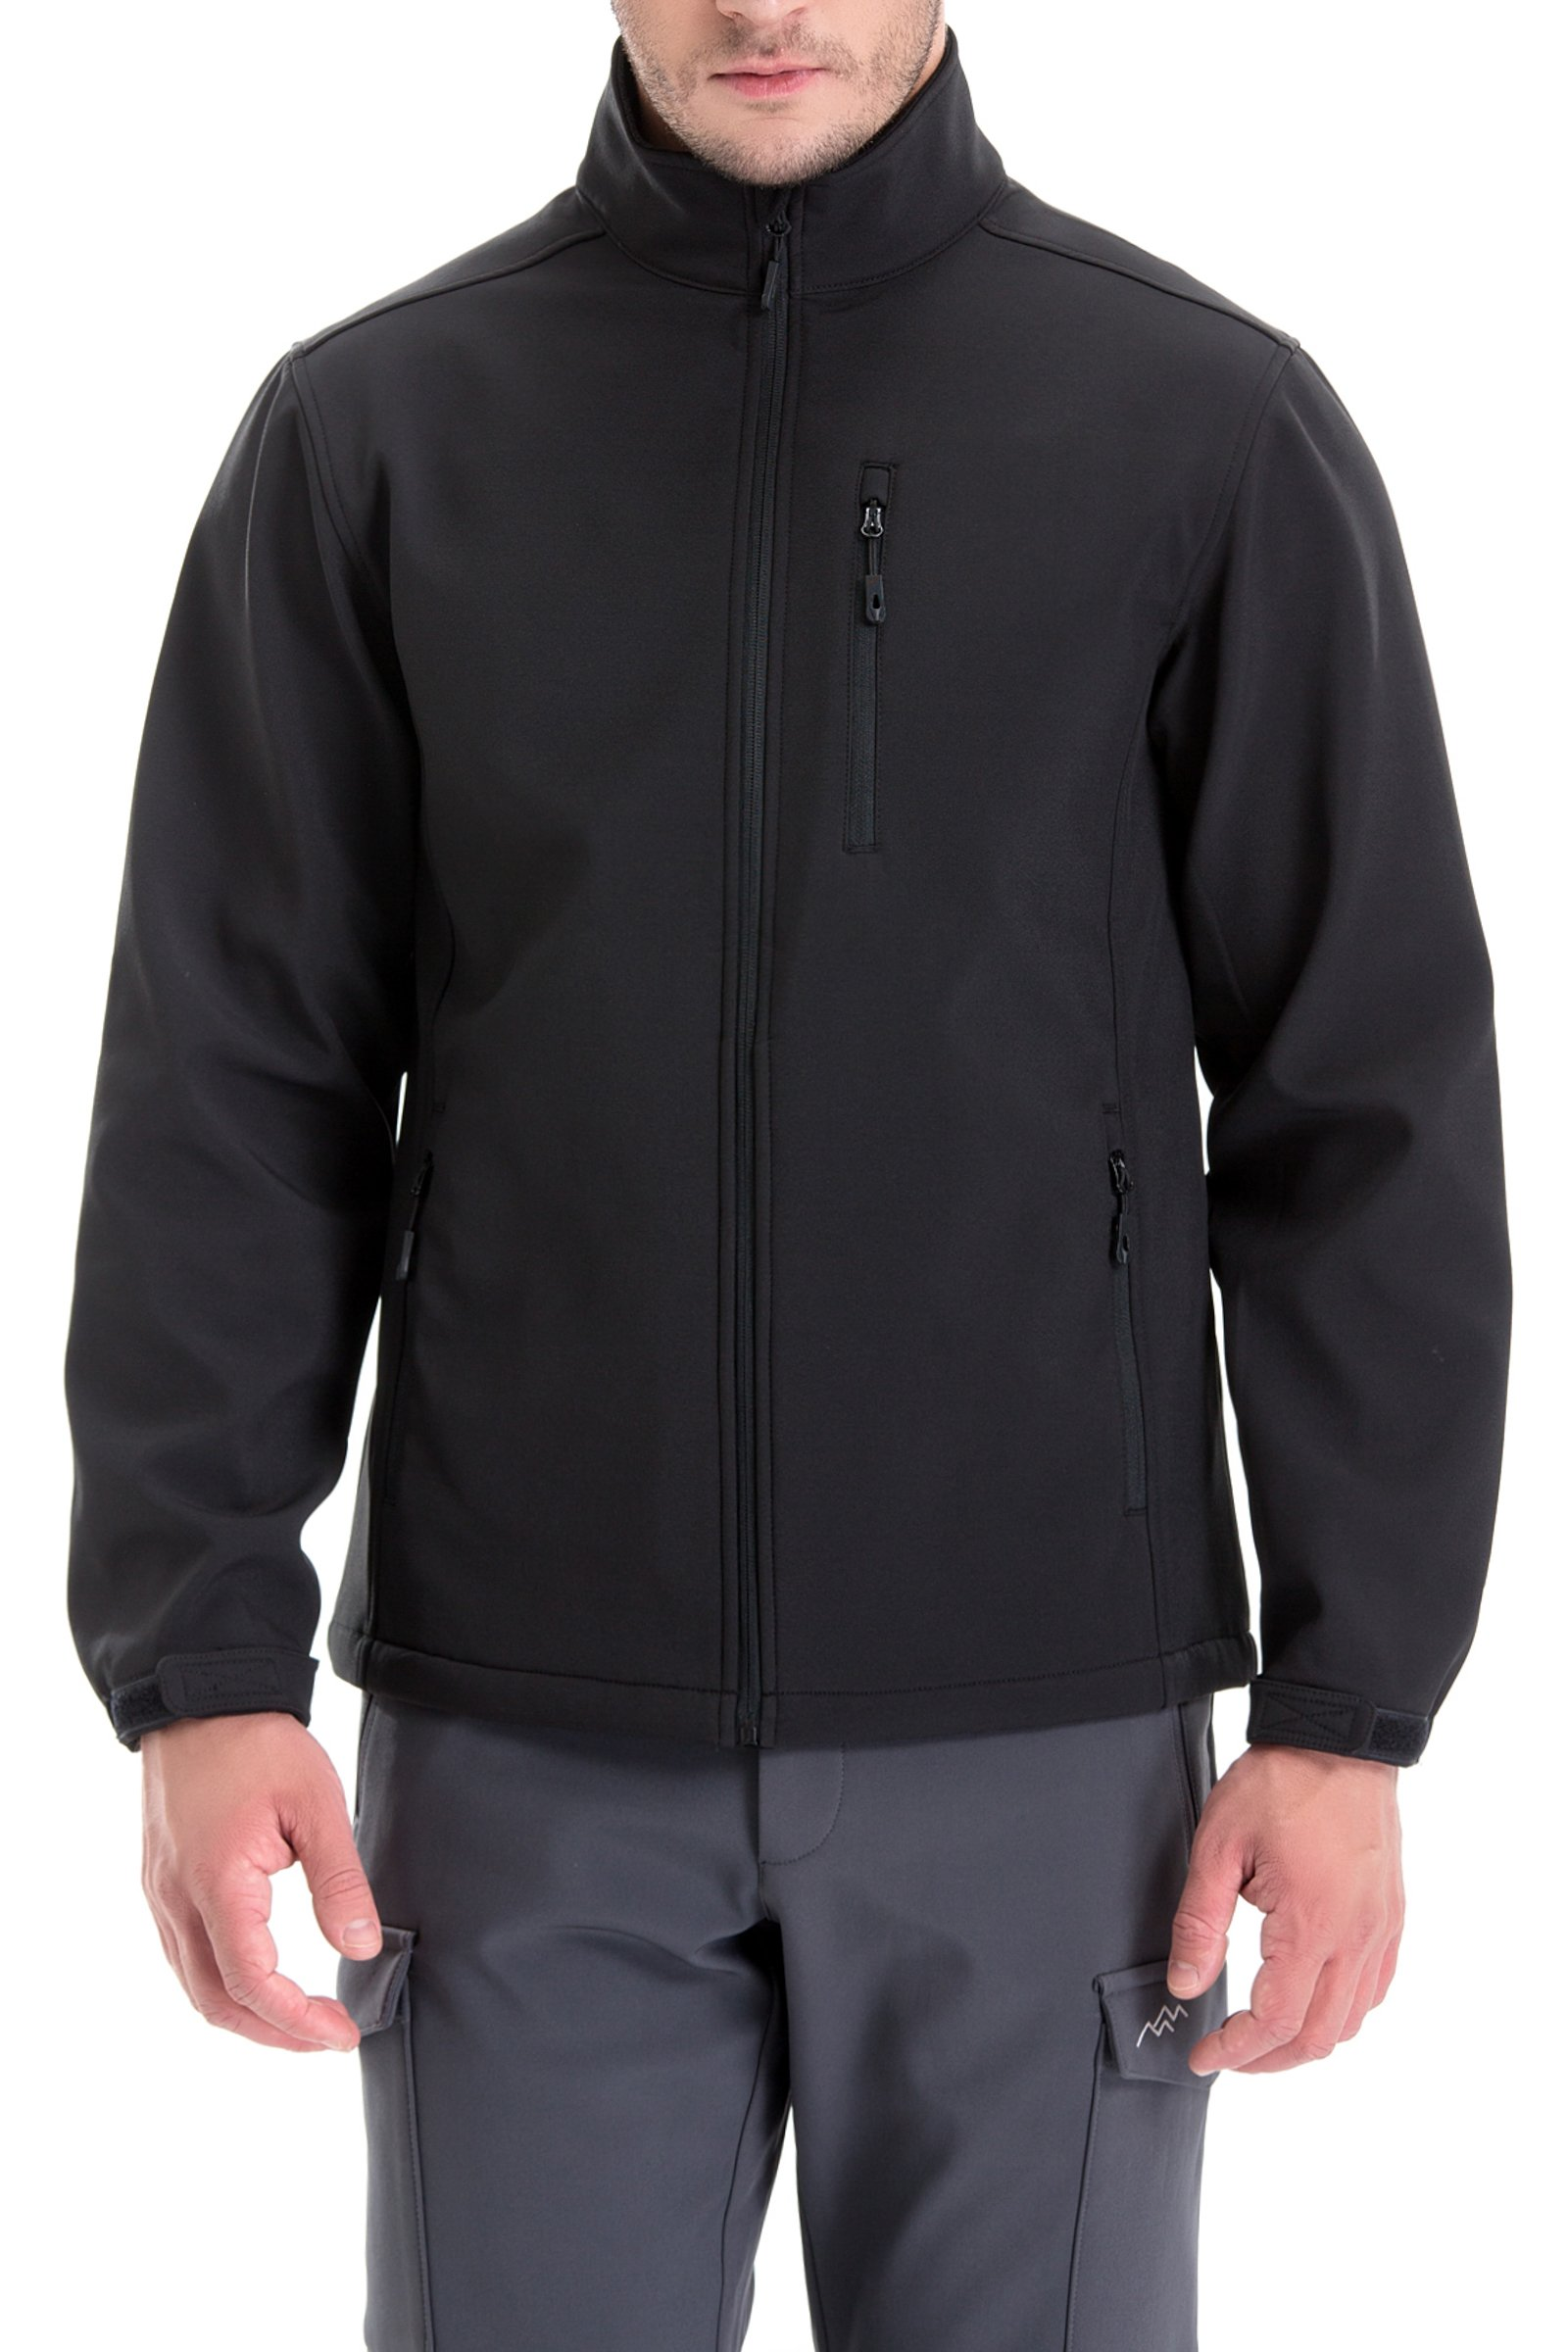 Trailside Supply Co. Men's Windproof Softshell Zip-Front Fleece-Lined Jacket (Black-L) by Trailside Supply Co.